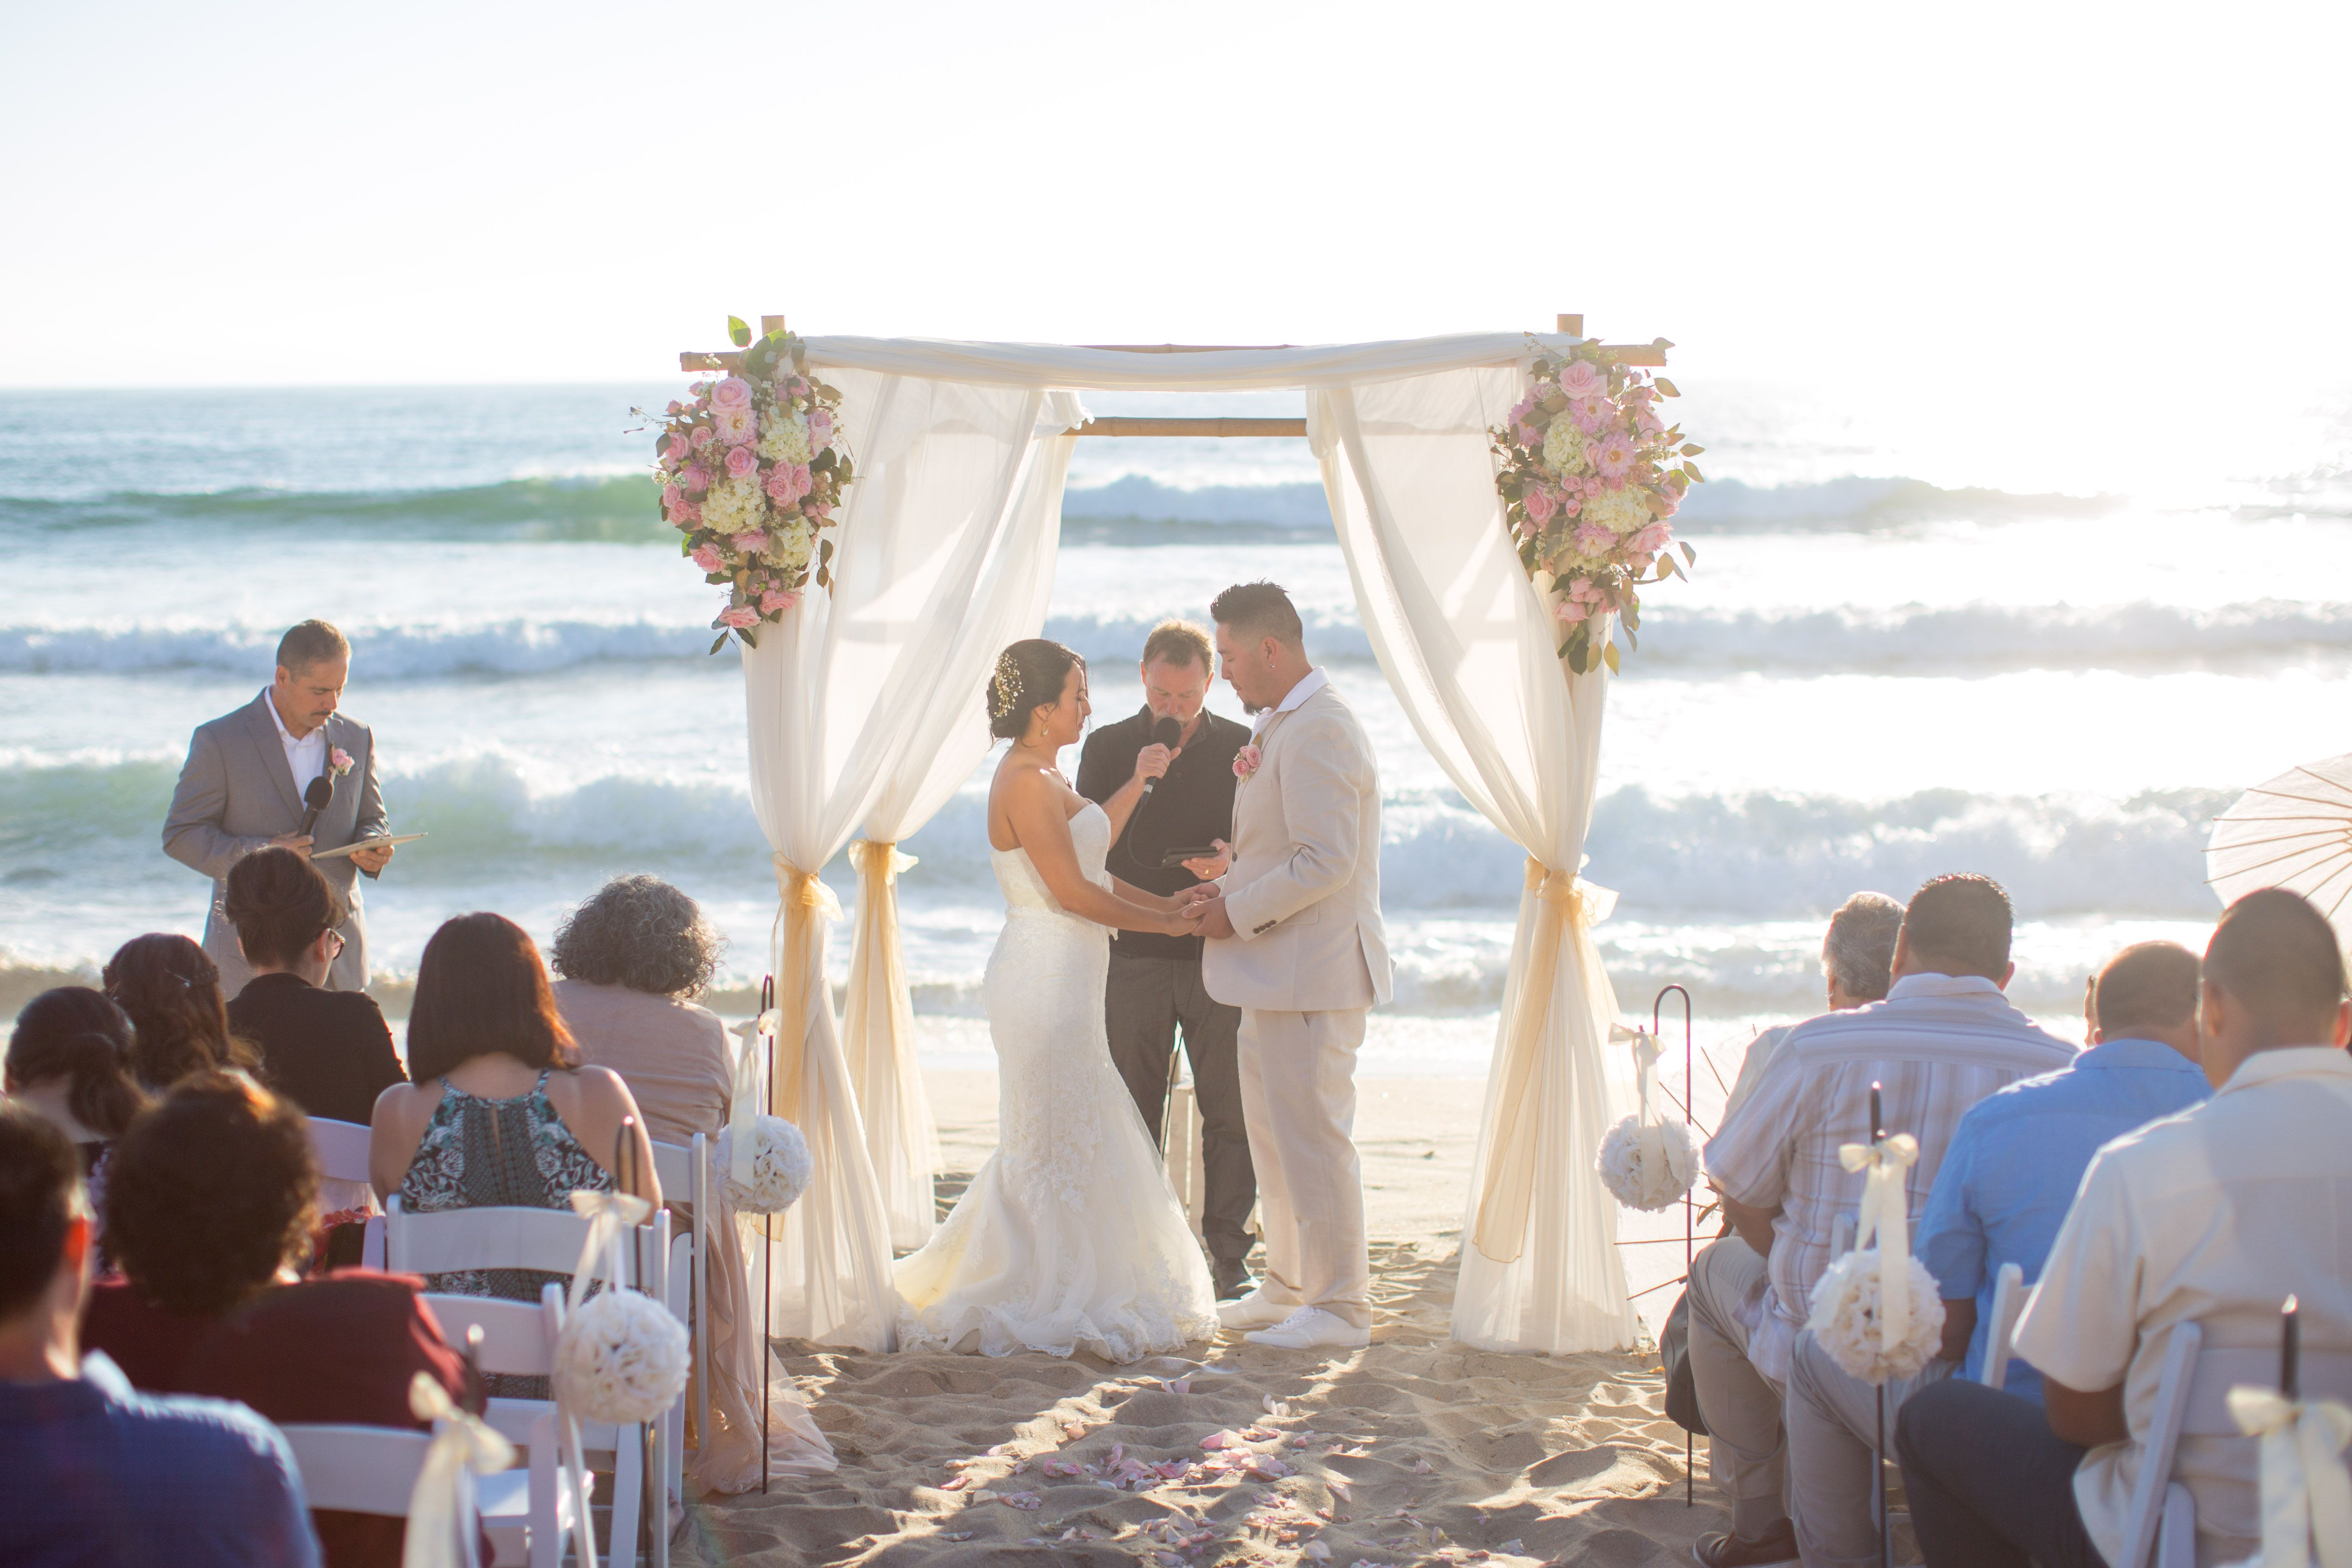 Dream Beach Wedding Offers All Encomping Ceremony Packages That Allow S To Have Their San Go Without Any Of The